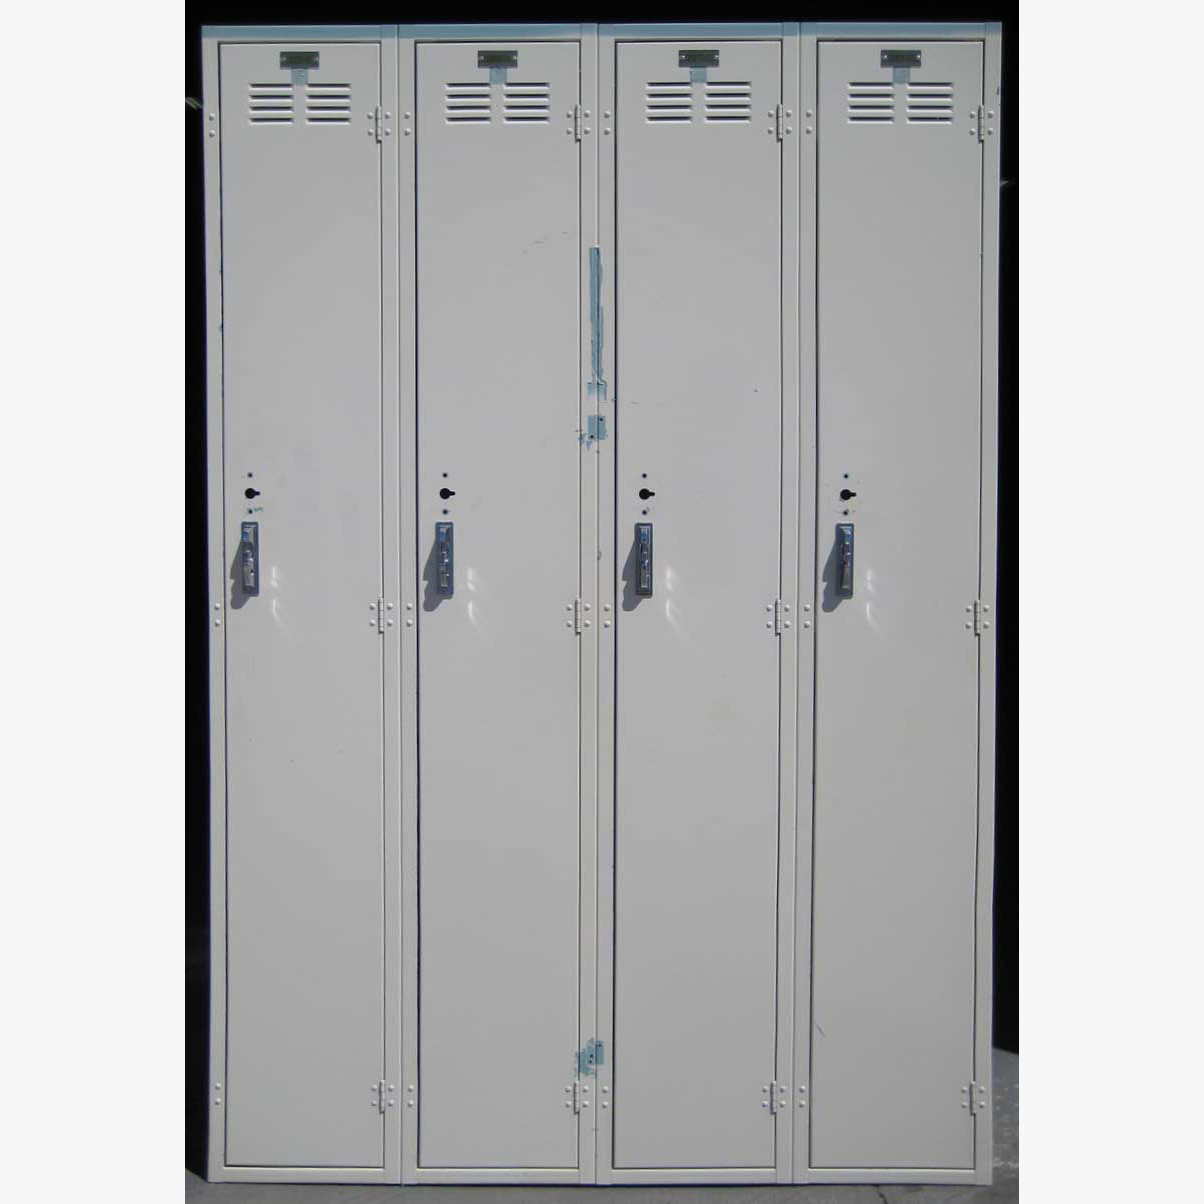 Used Military Lockersimage 1